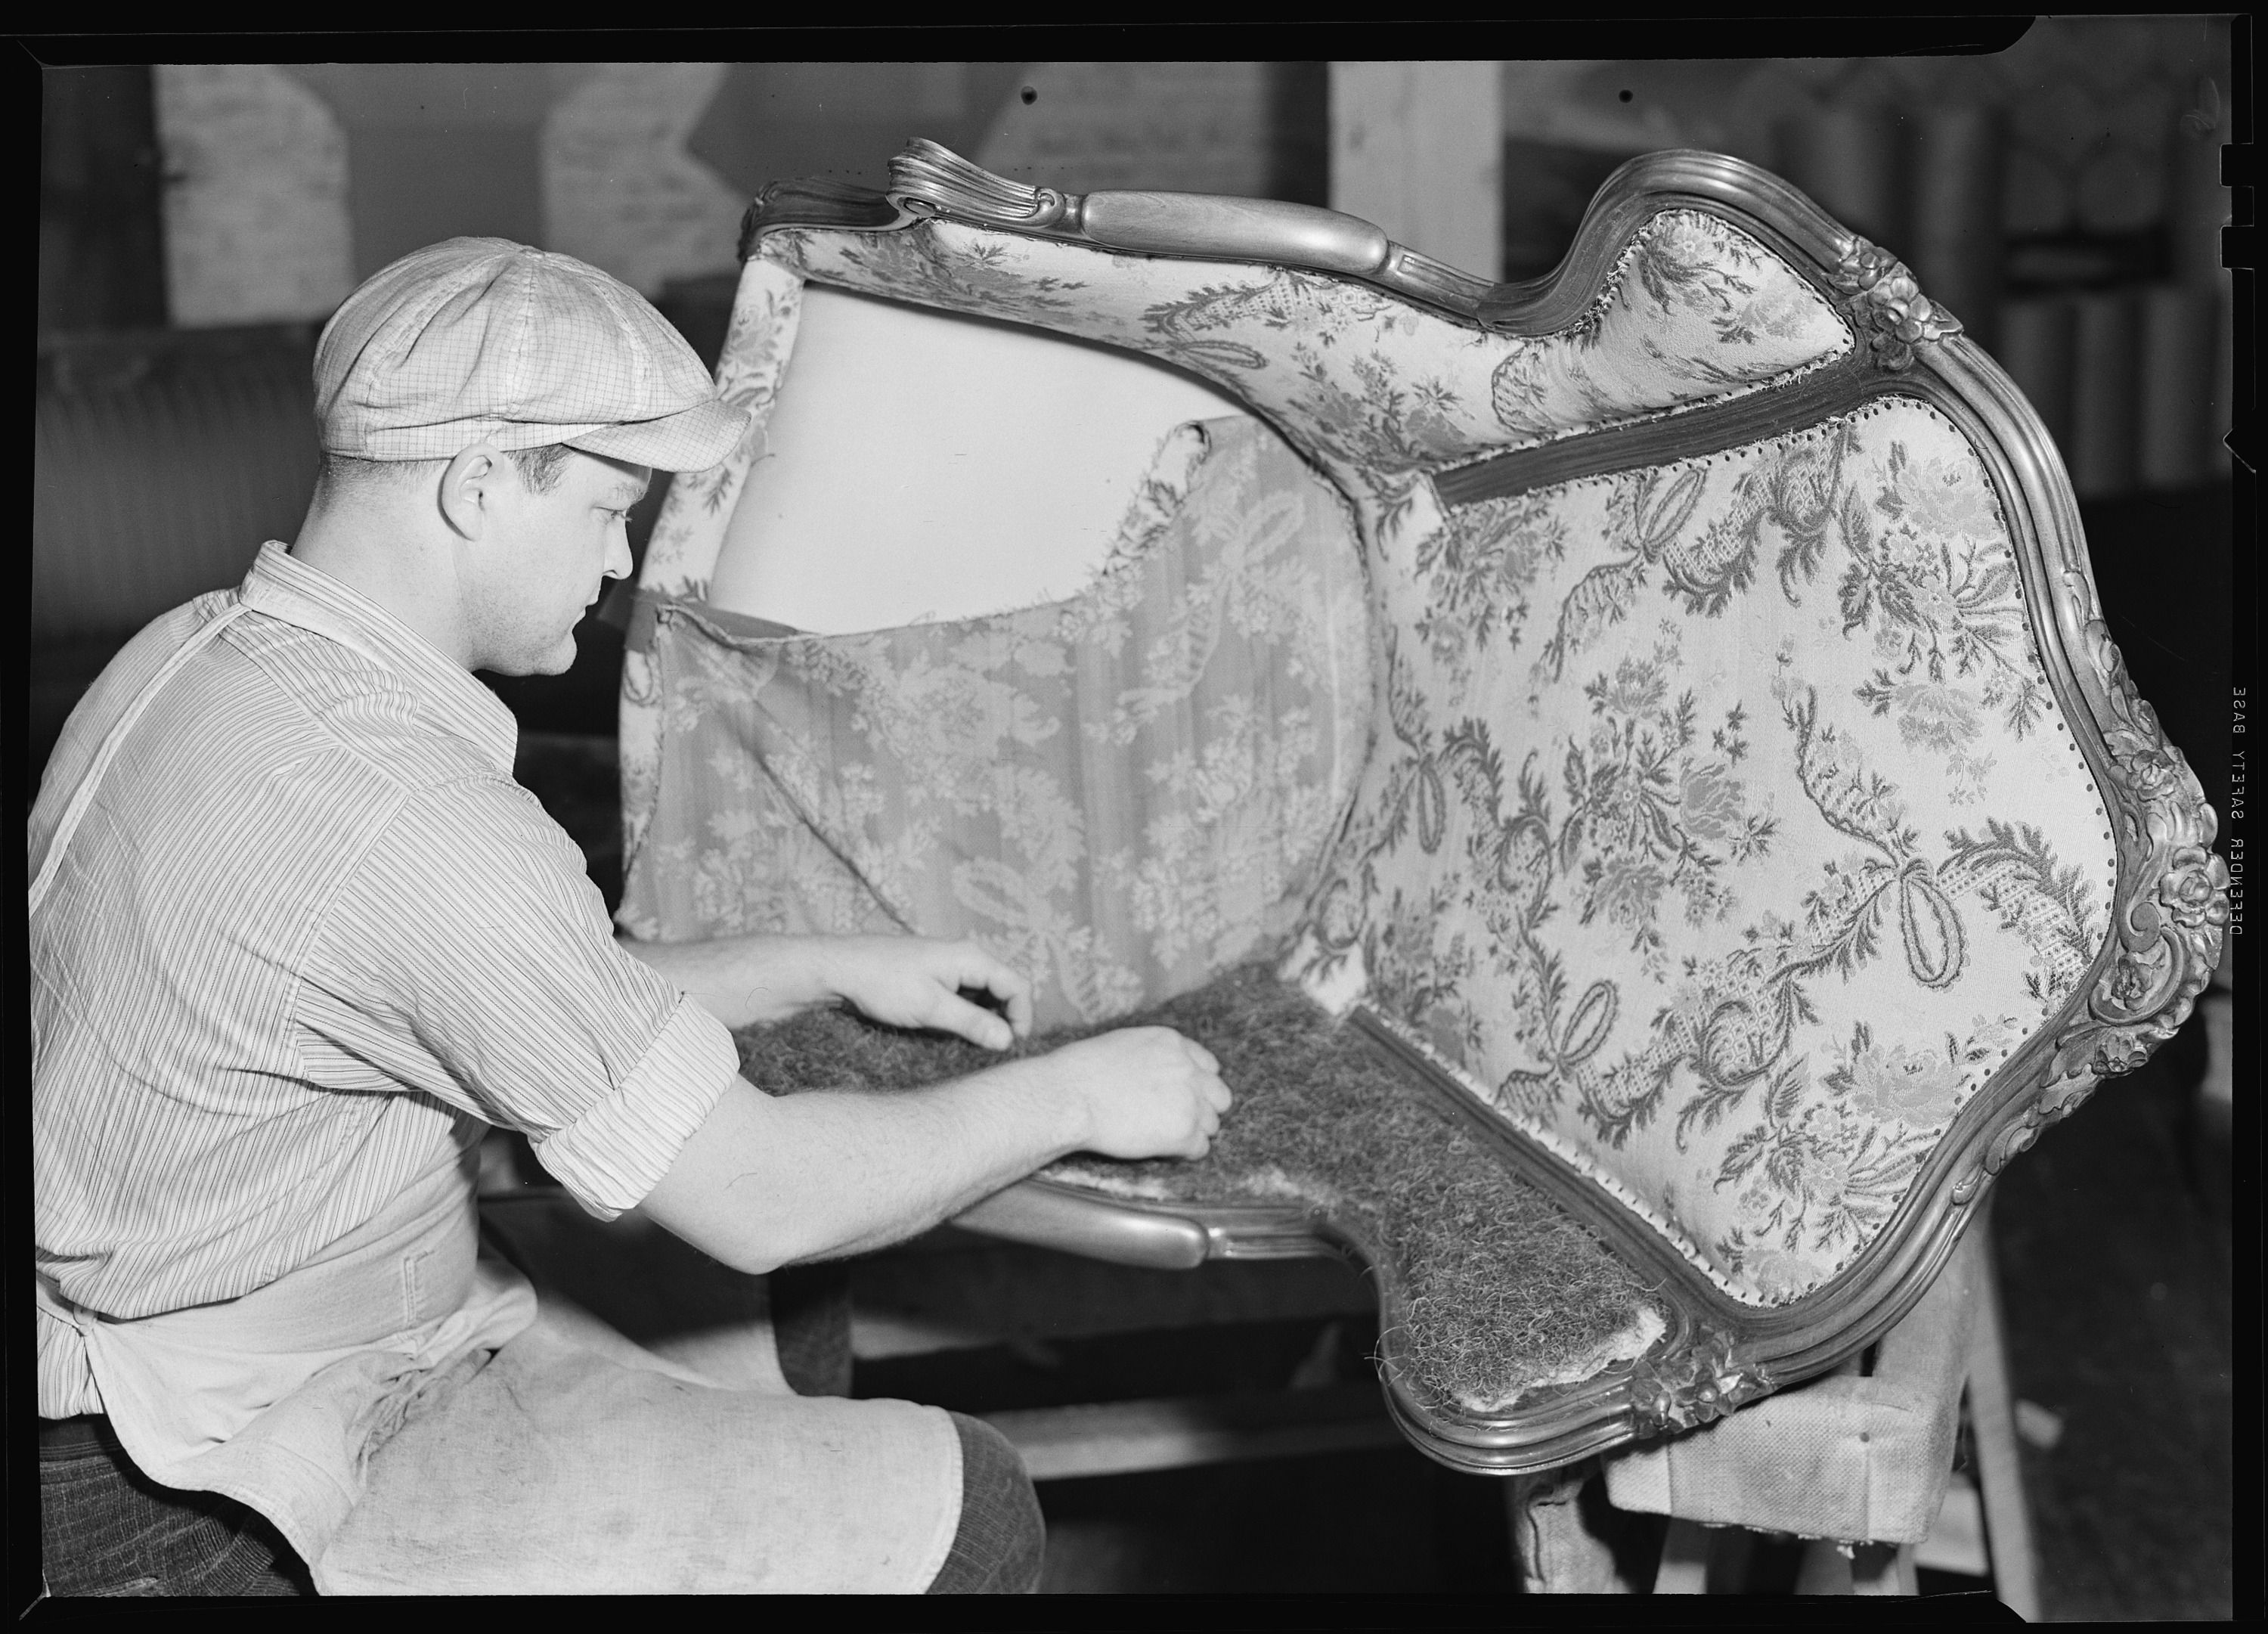 File:High Point, North Carolina   Upholstering. Tomlinson Chair  Manufacturing Co. Applying